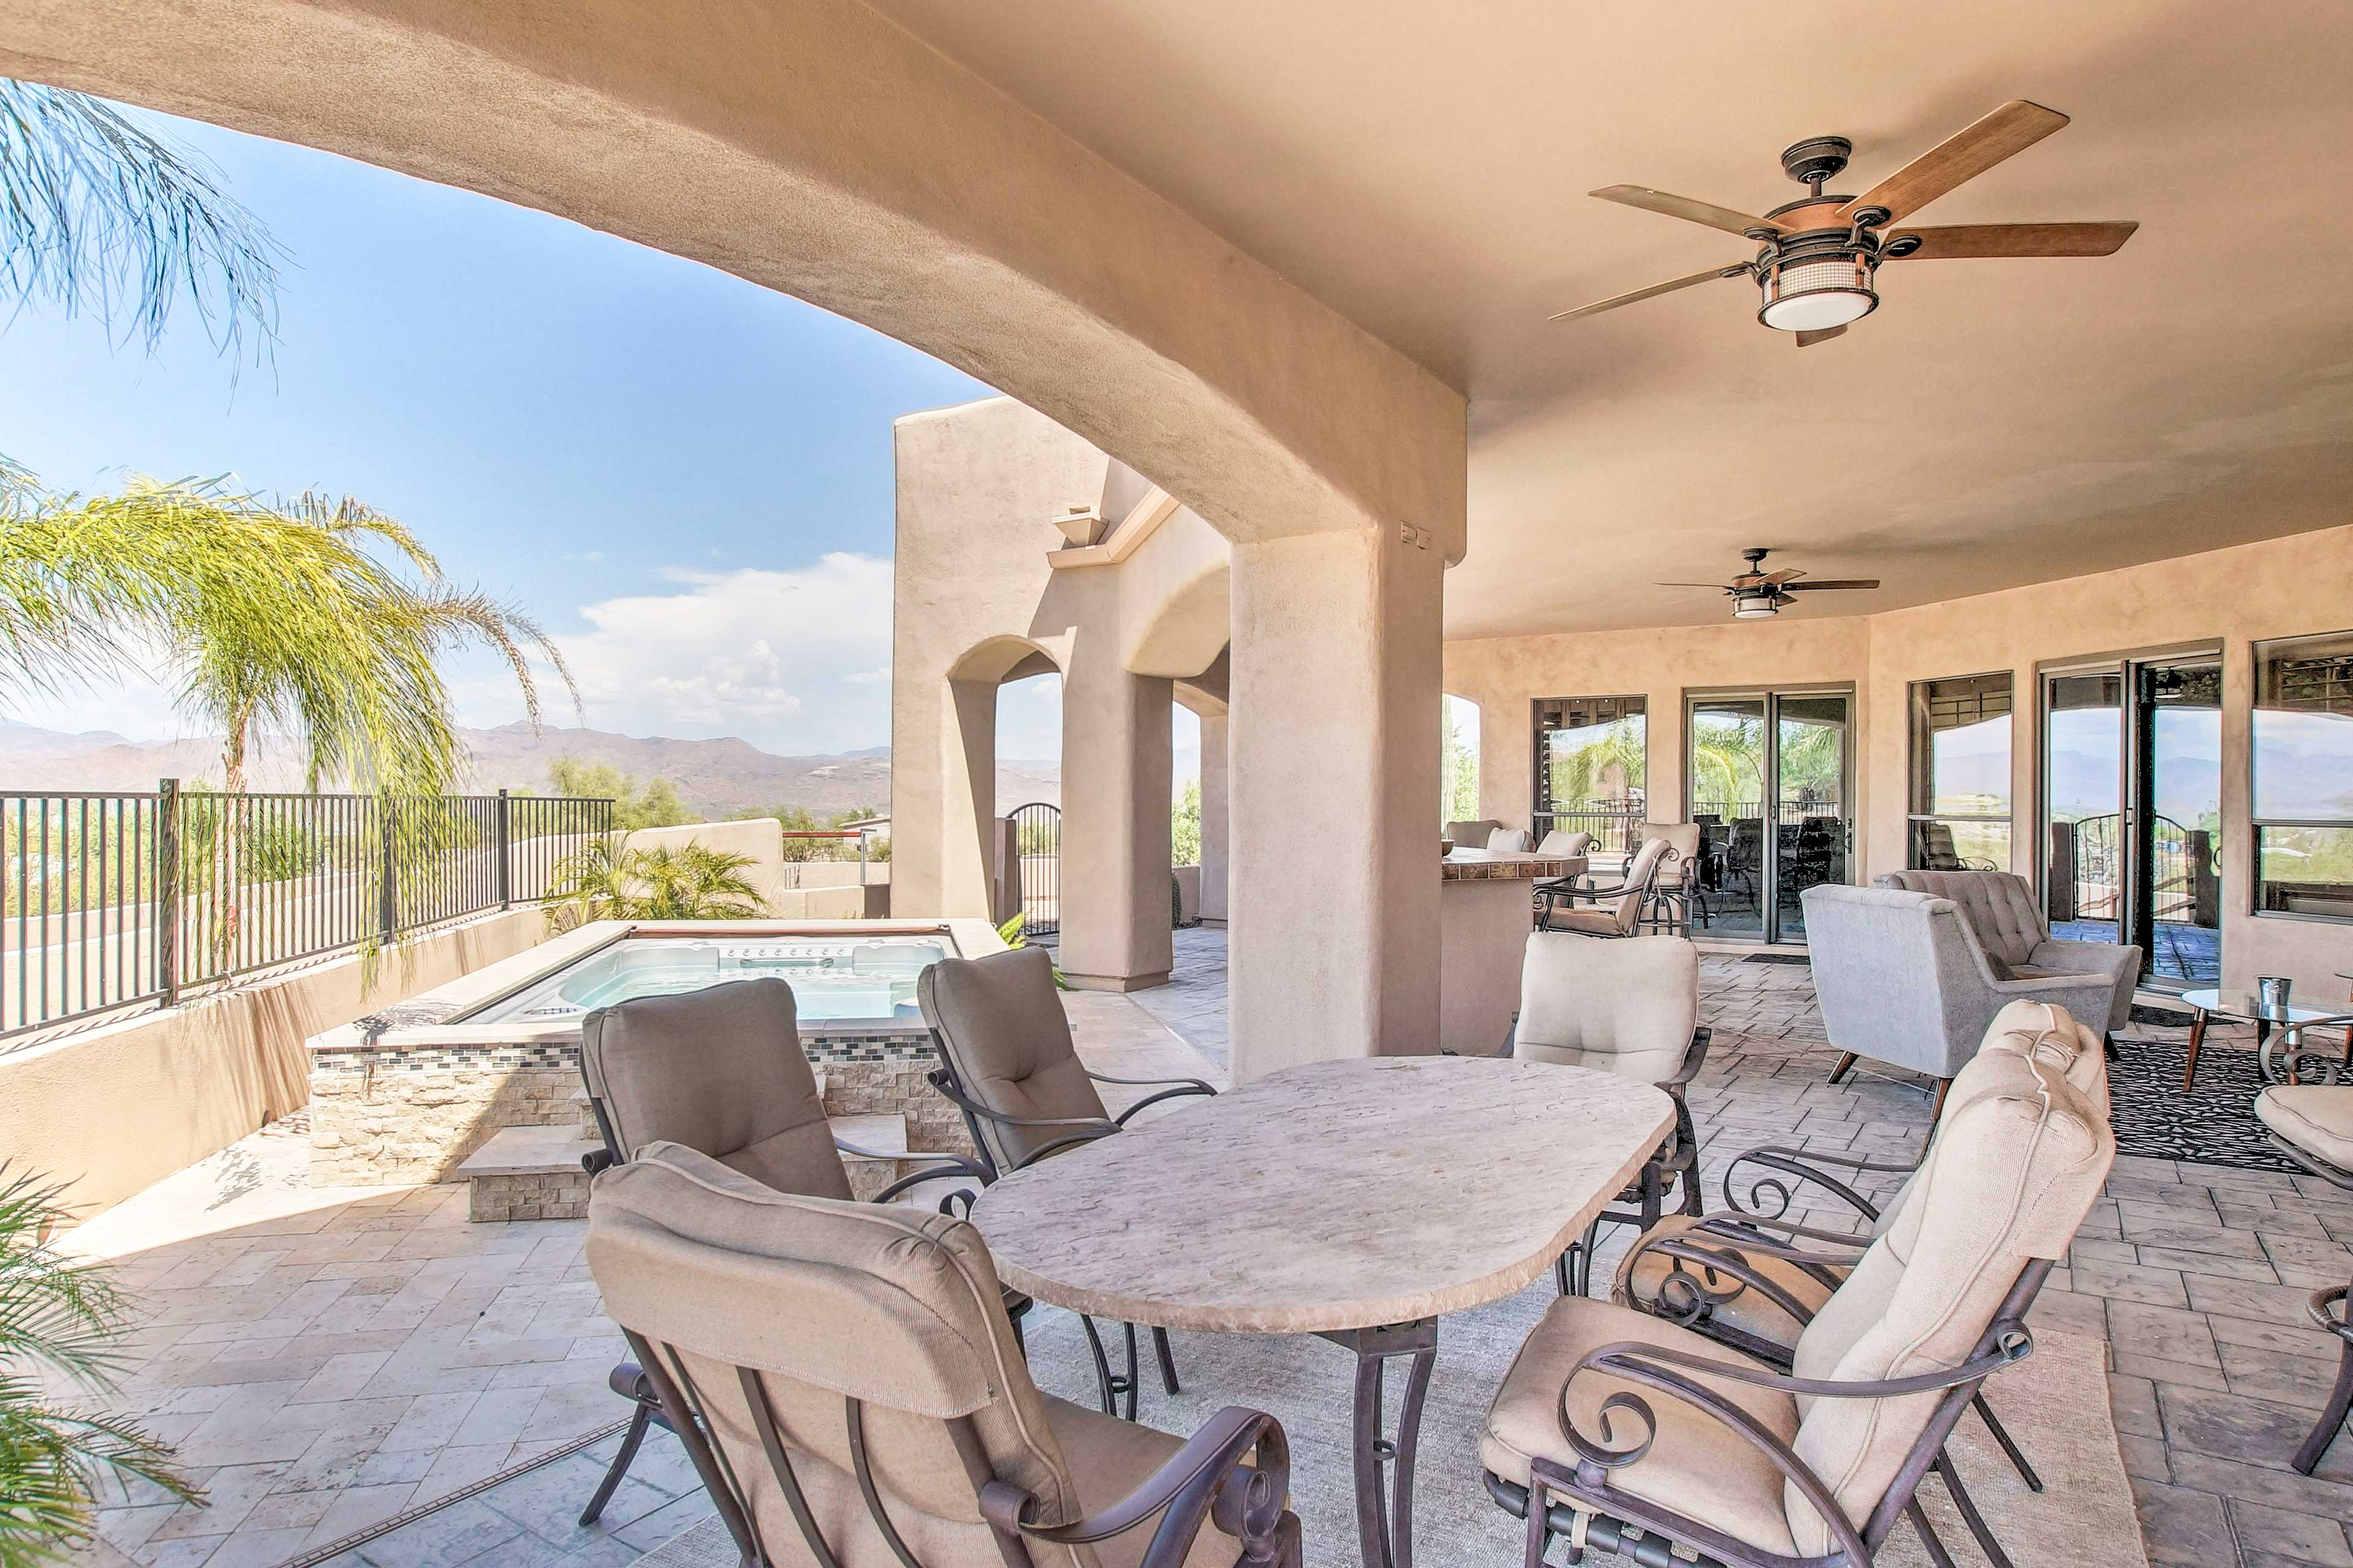 With a furnished patio, pool, hot tub, and more the property has it all!